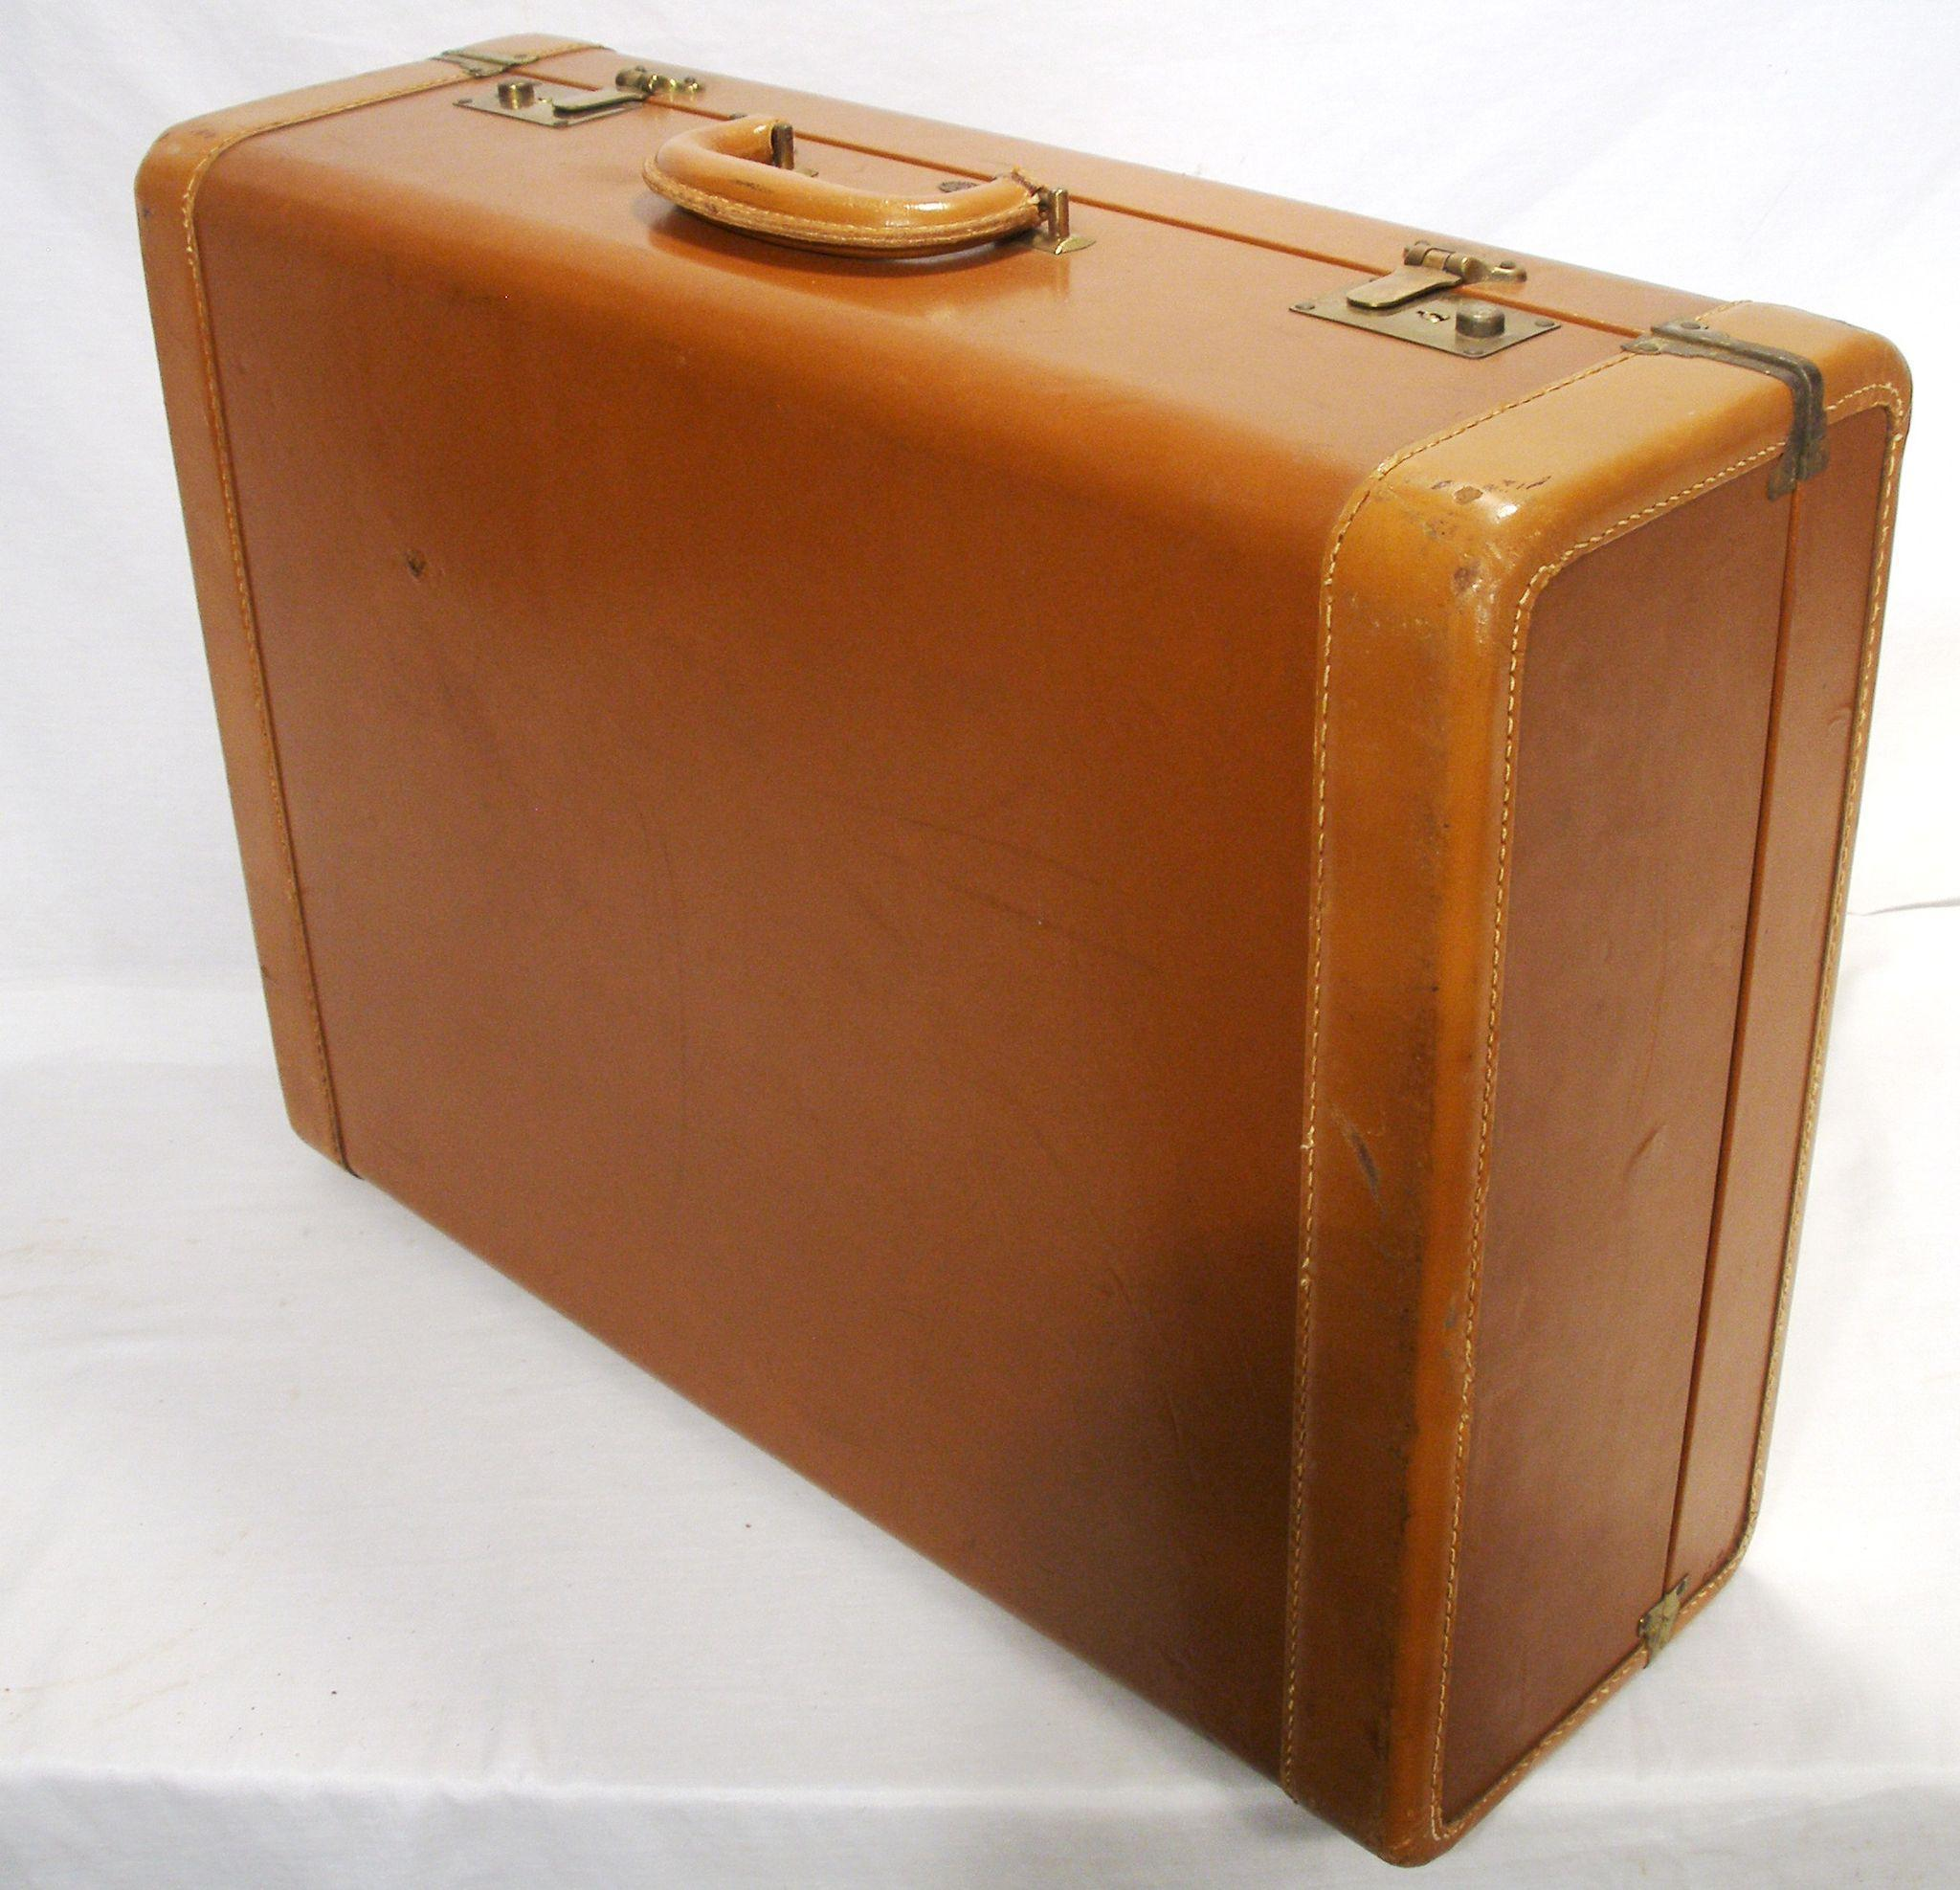 Vintage Rauch bach Leather & Brass Travel Luggage Suitcase from ...